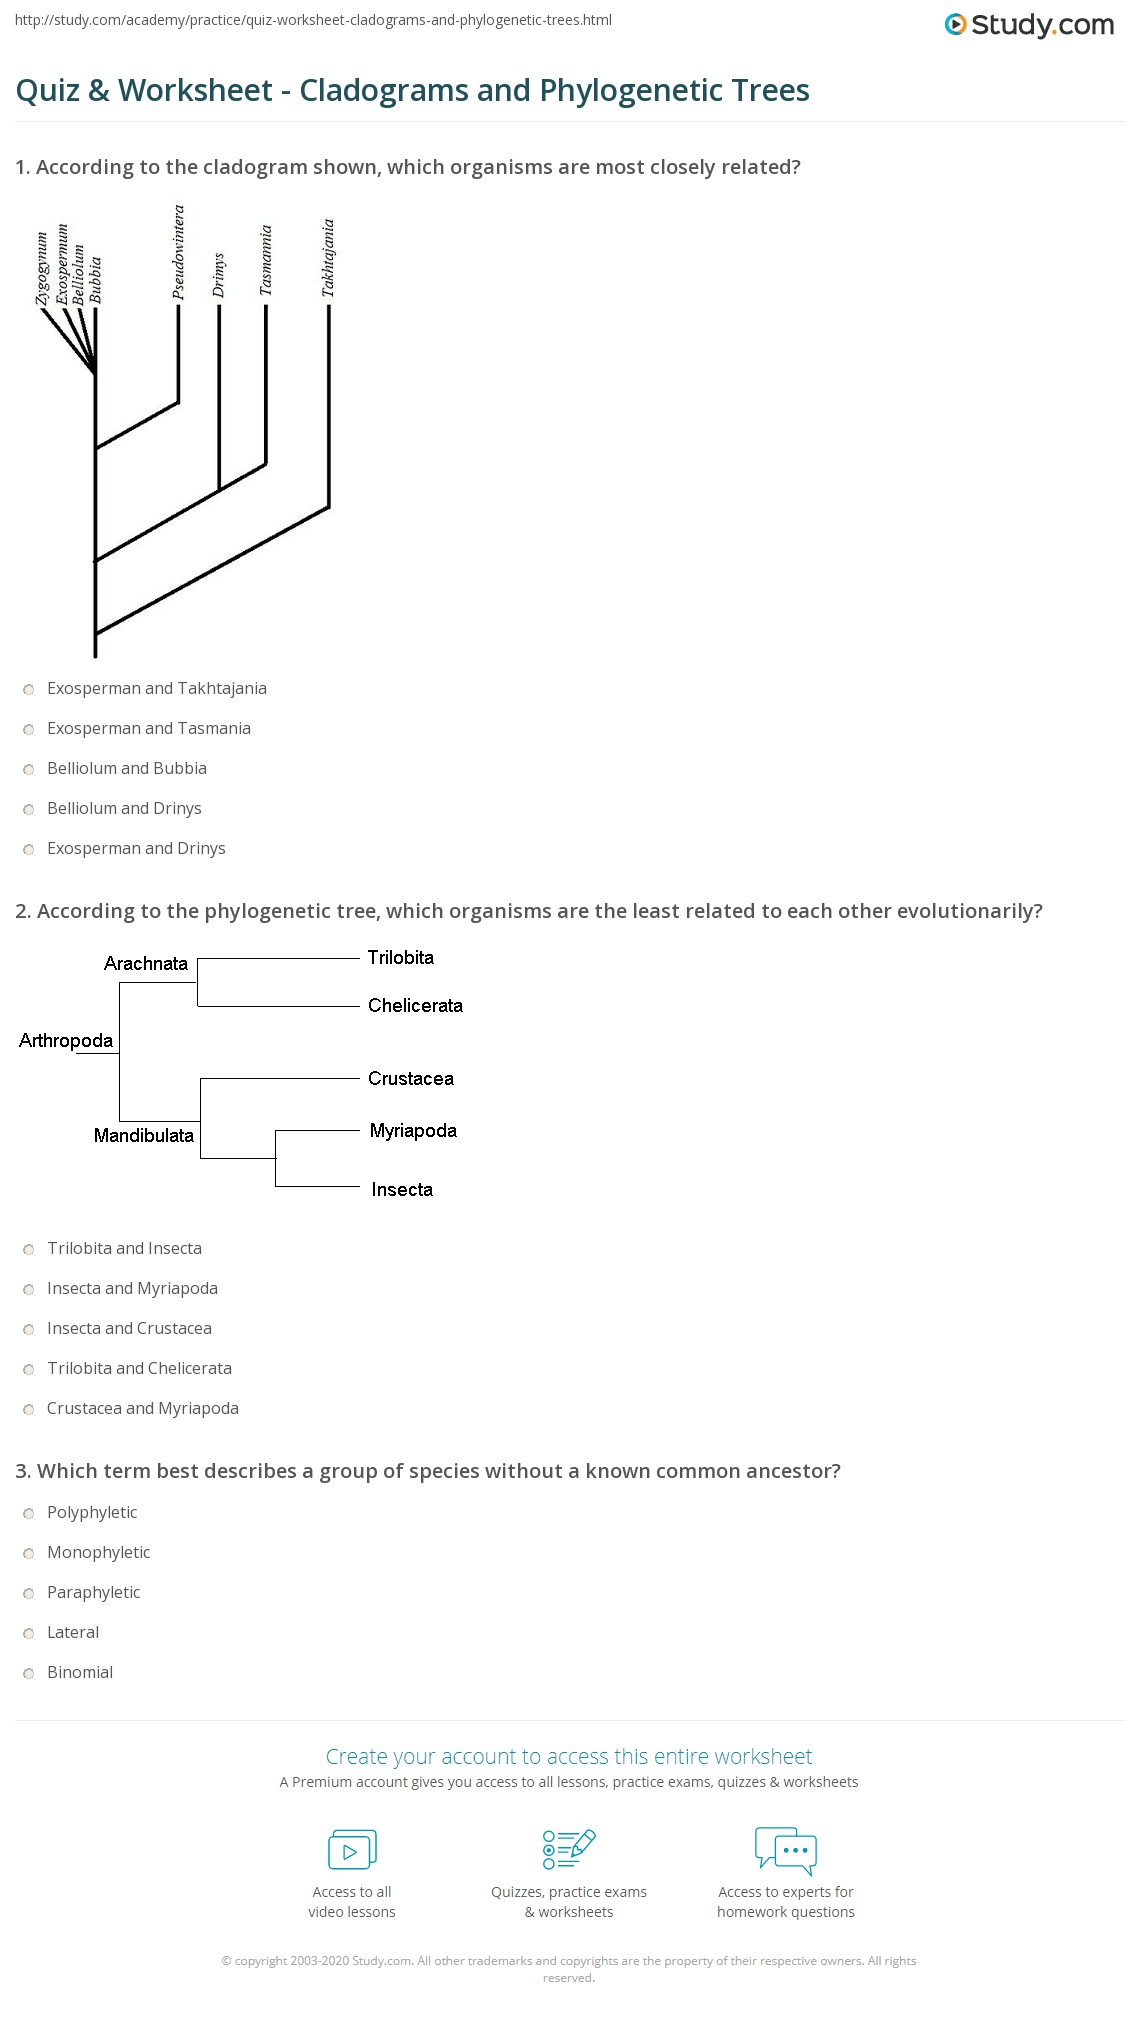 quiz worksheet cladograms and phylogenetic trees. Black Bedroom Furniture Sets. Home Design Ideas